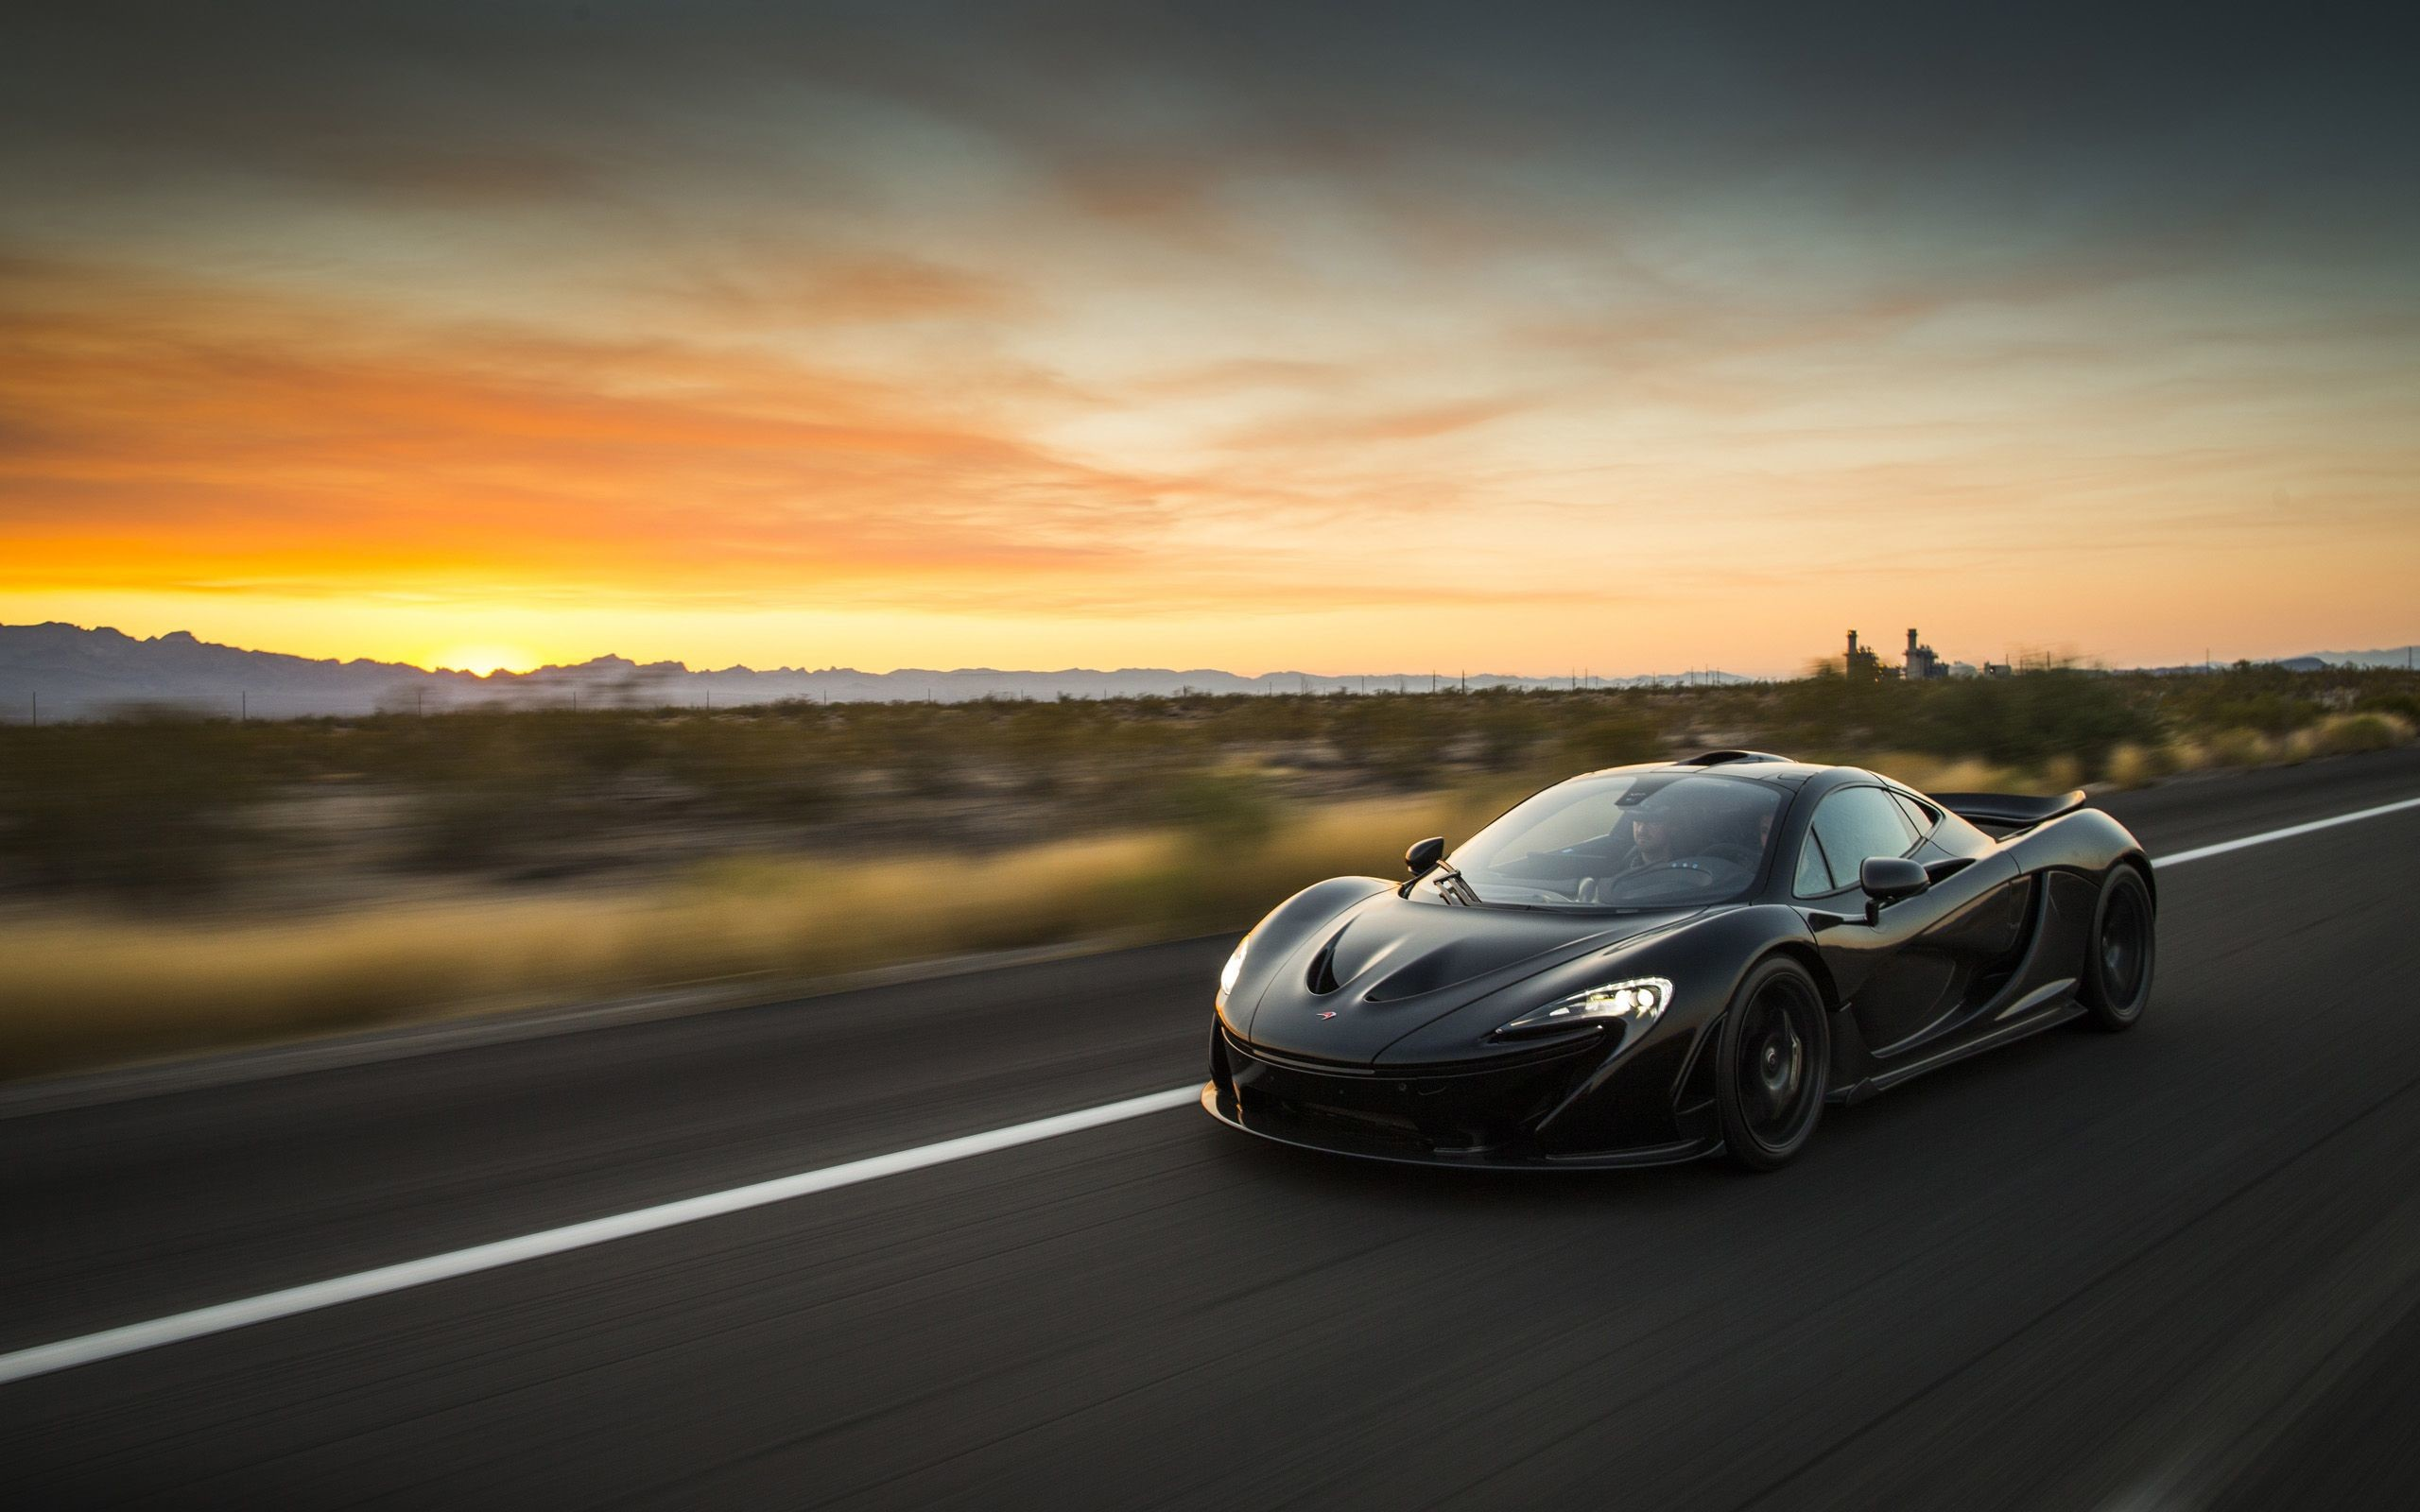 Cars Wallpapers: Super Car HD Wallpapers (72+ Images